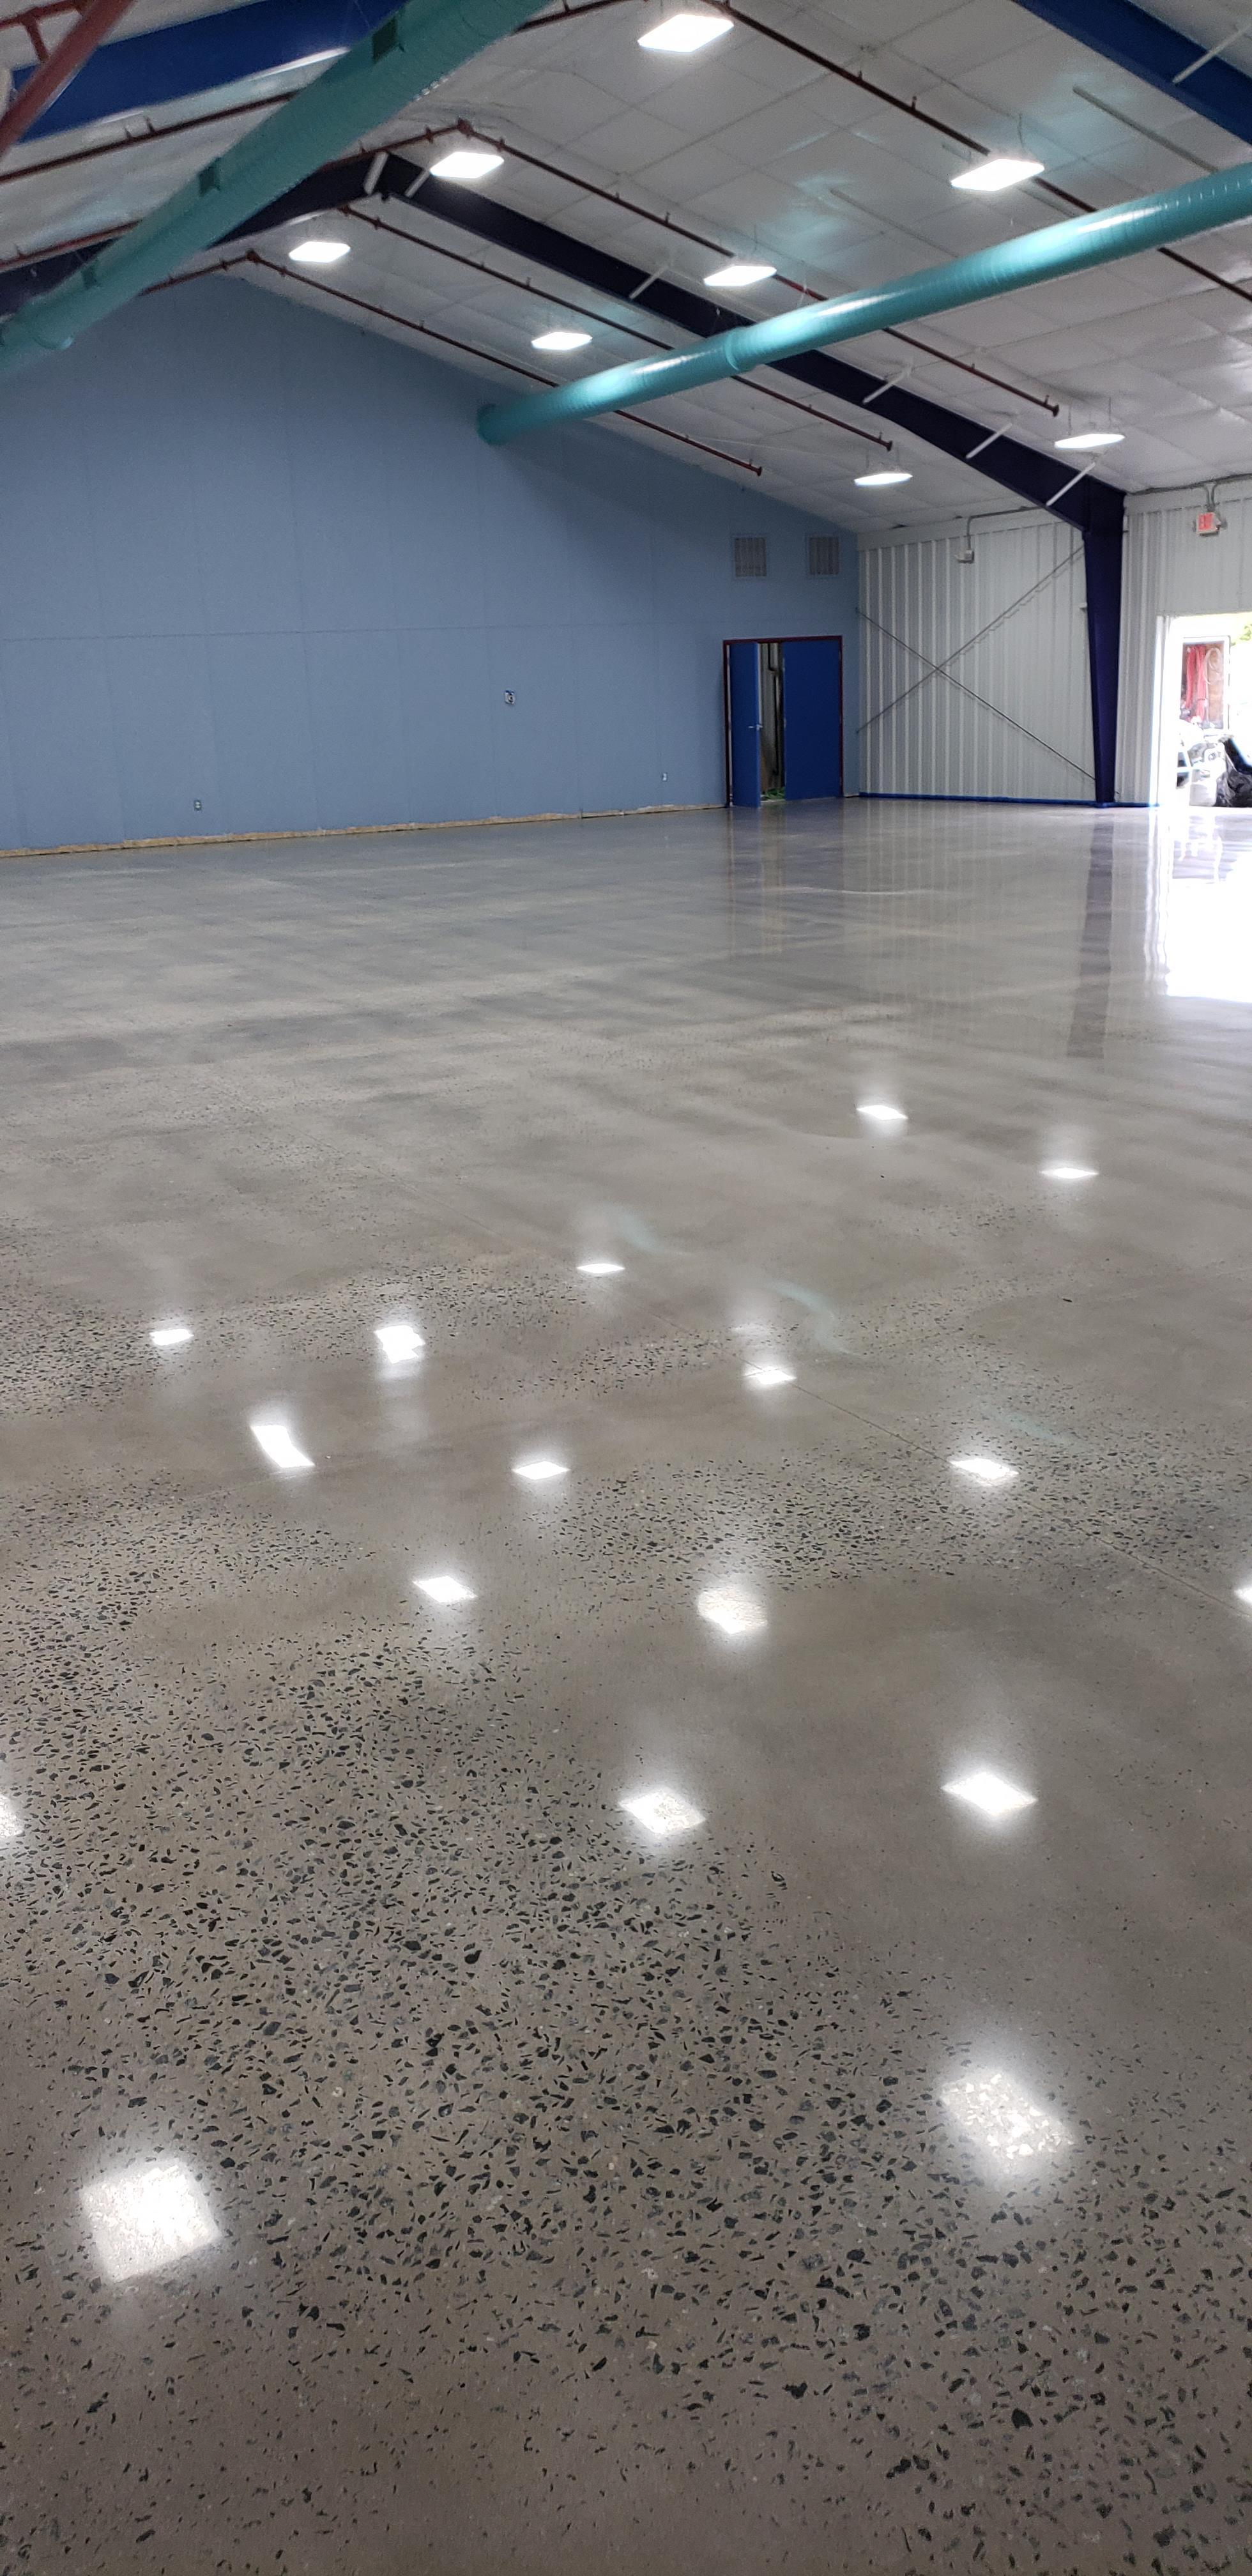 A gray polished concrete floor in an indoor archary range.